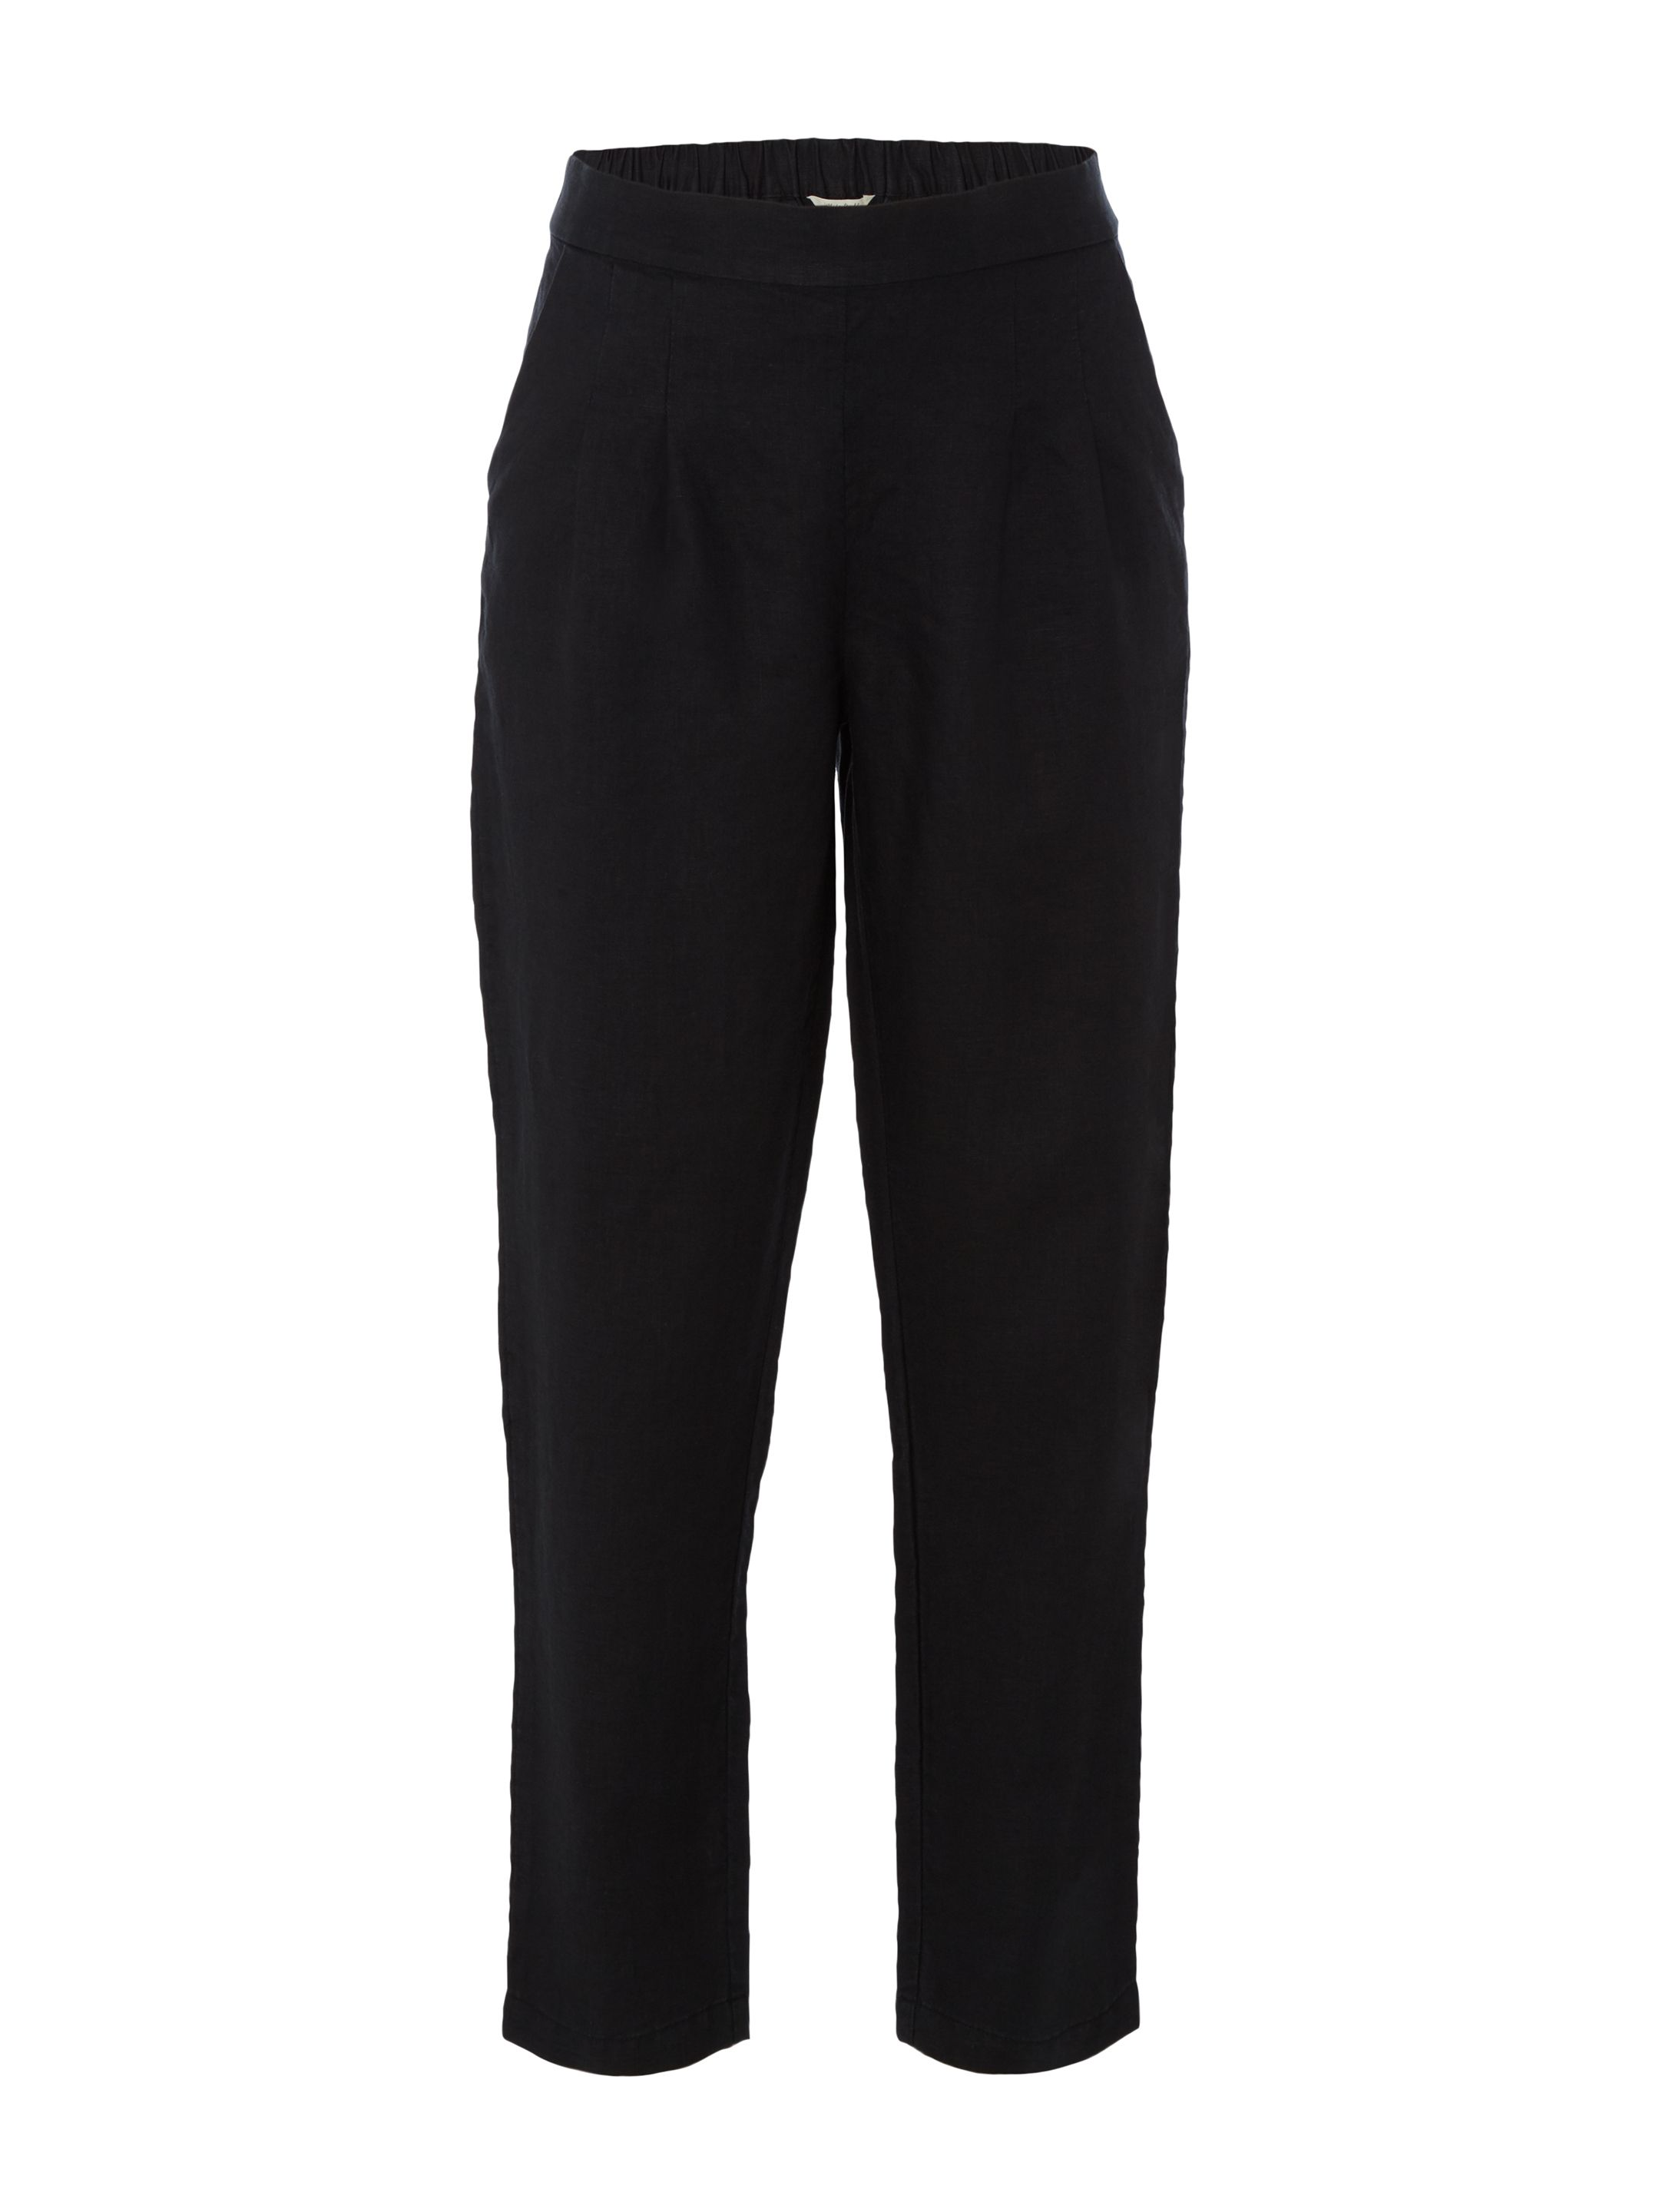 White Stuff Maison Linen Trousers, Black